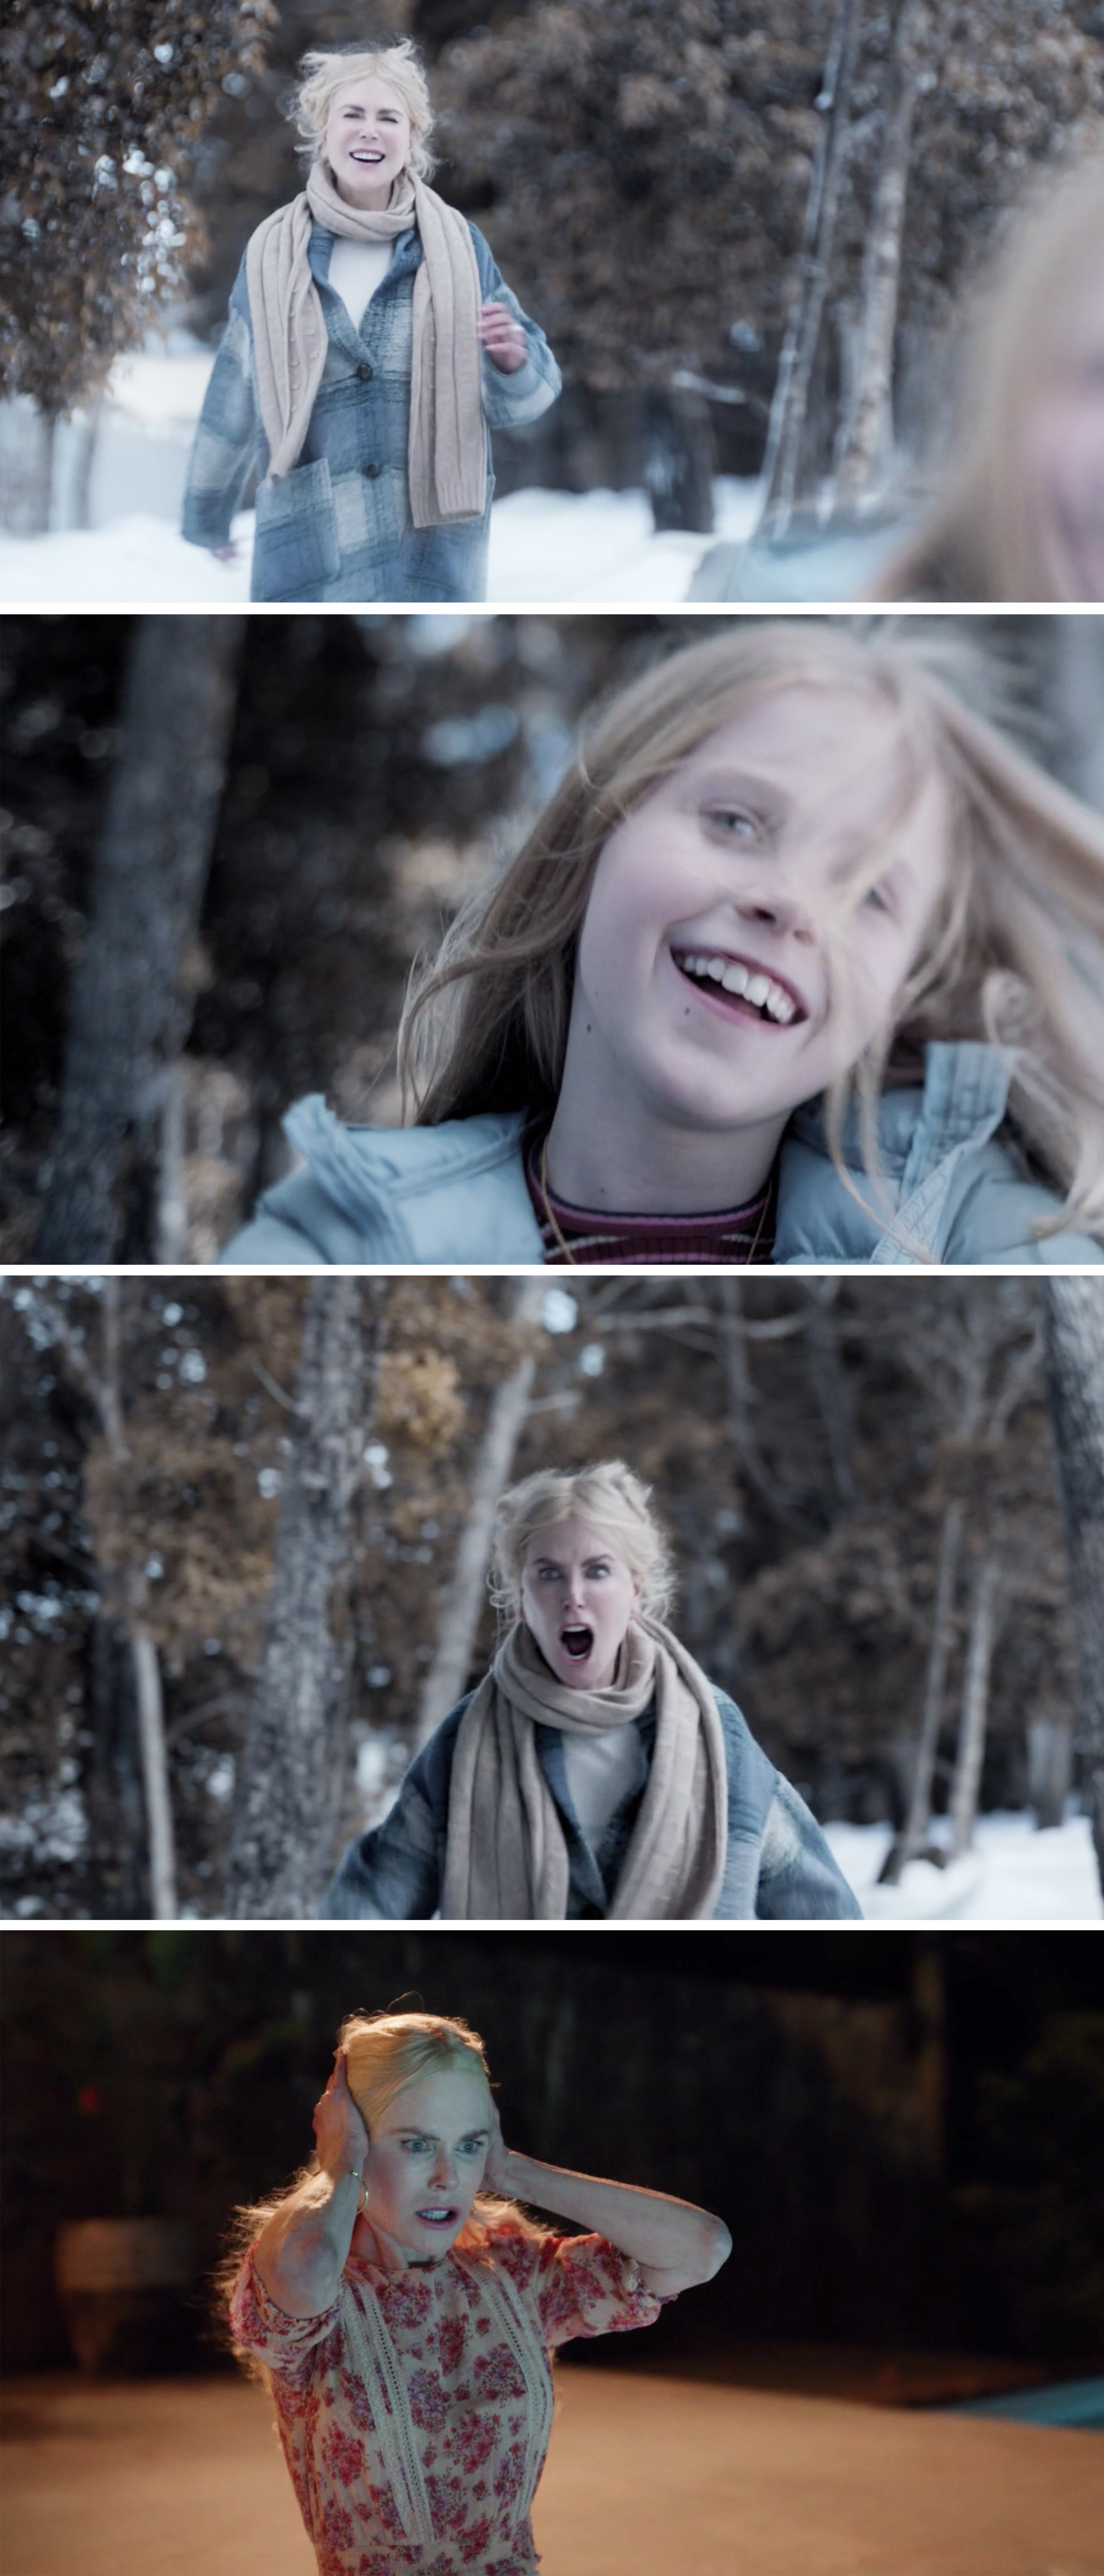 Masha yelling after her daughter in a flashback